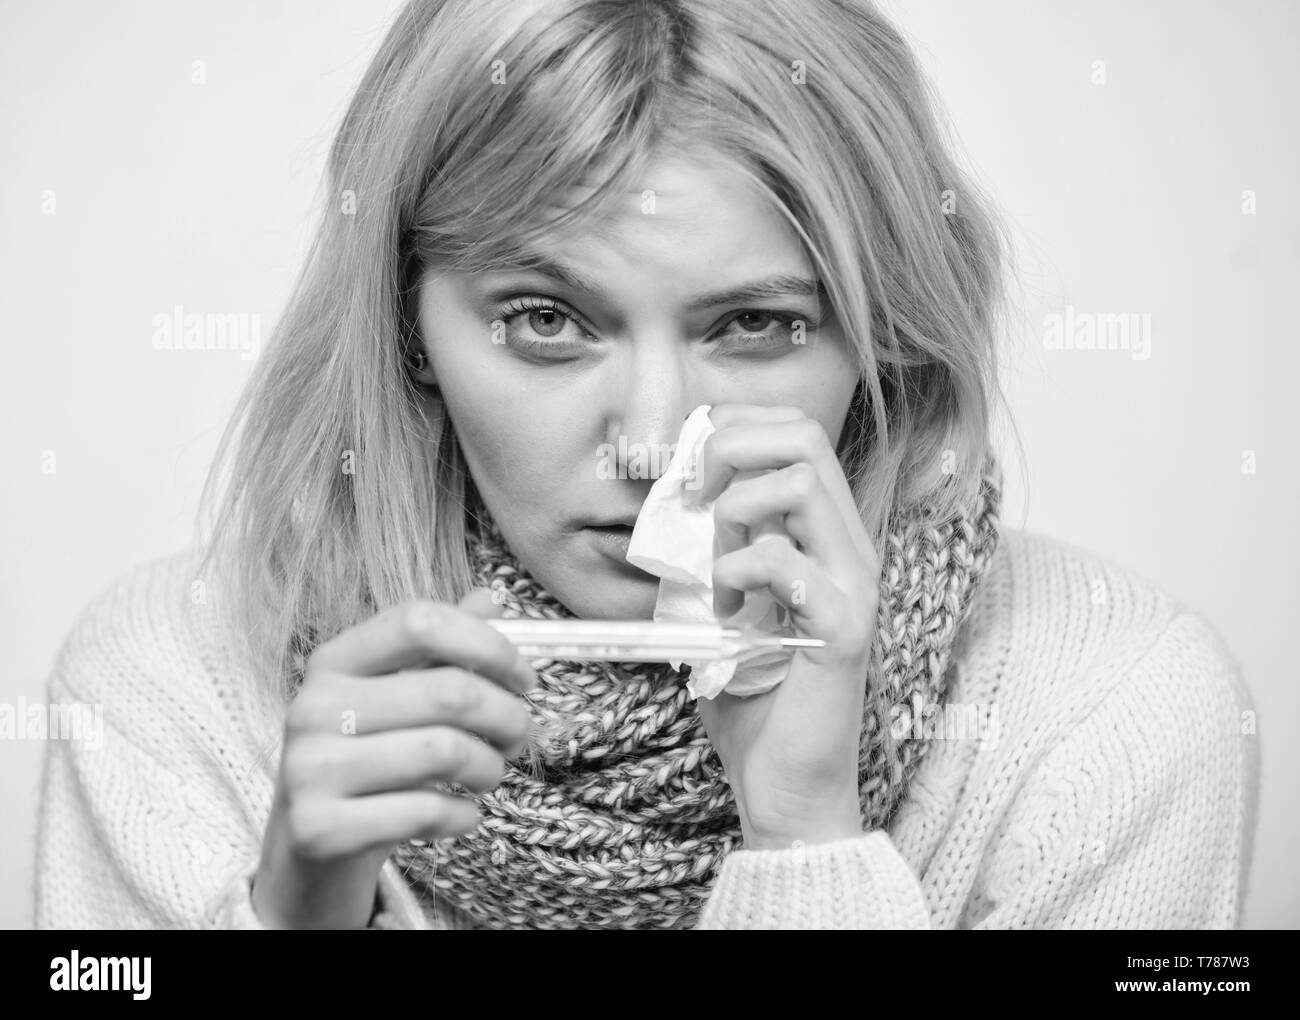 High temperature concept. Take temperature and assess symptoms. Measure temperature. Woman feels badly ill sneezing. Girl in scarf hold thermometer and tissue close up. Cold and flu remedies. - Stock Image